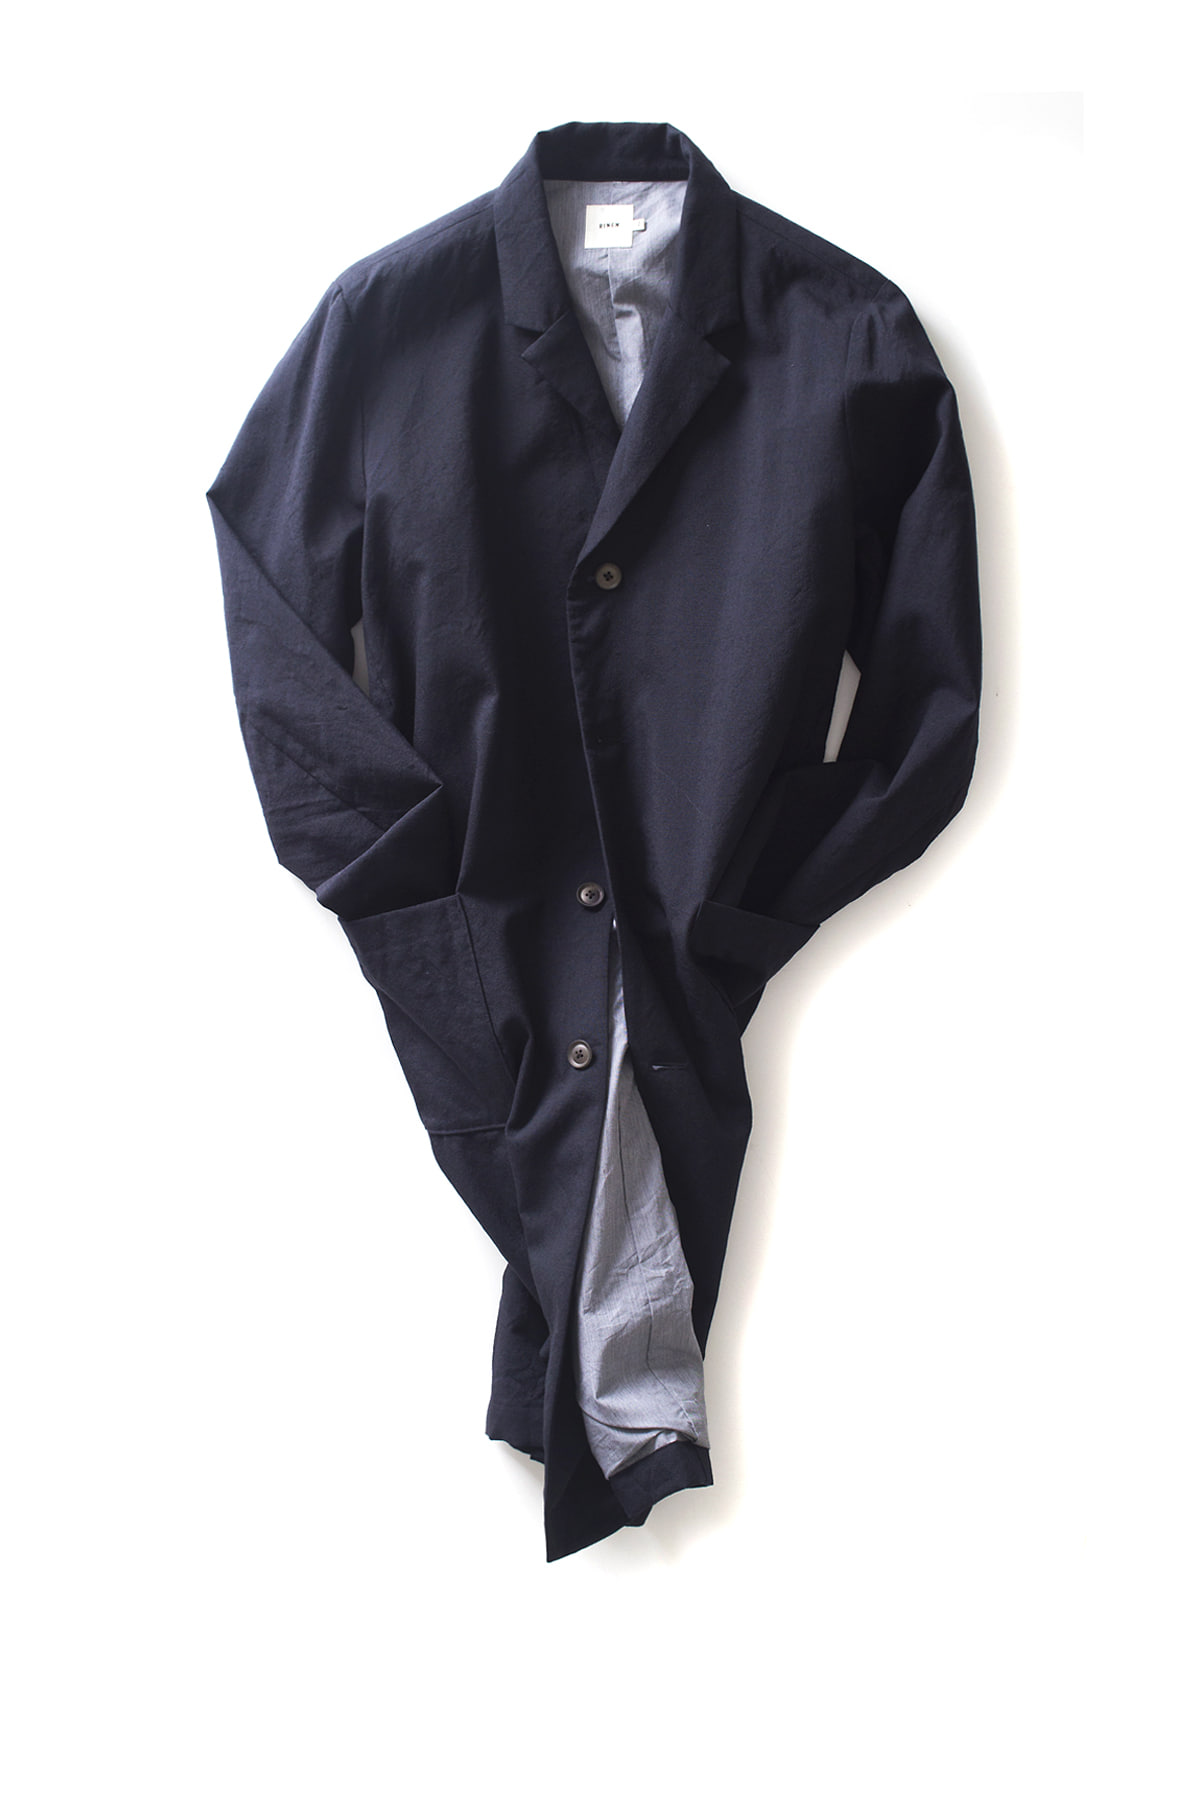 RINEN : Tailored Coat (Navy)